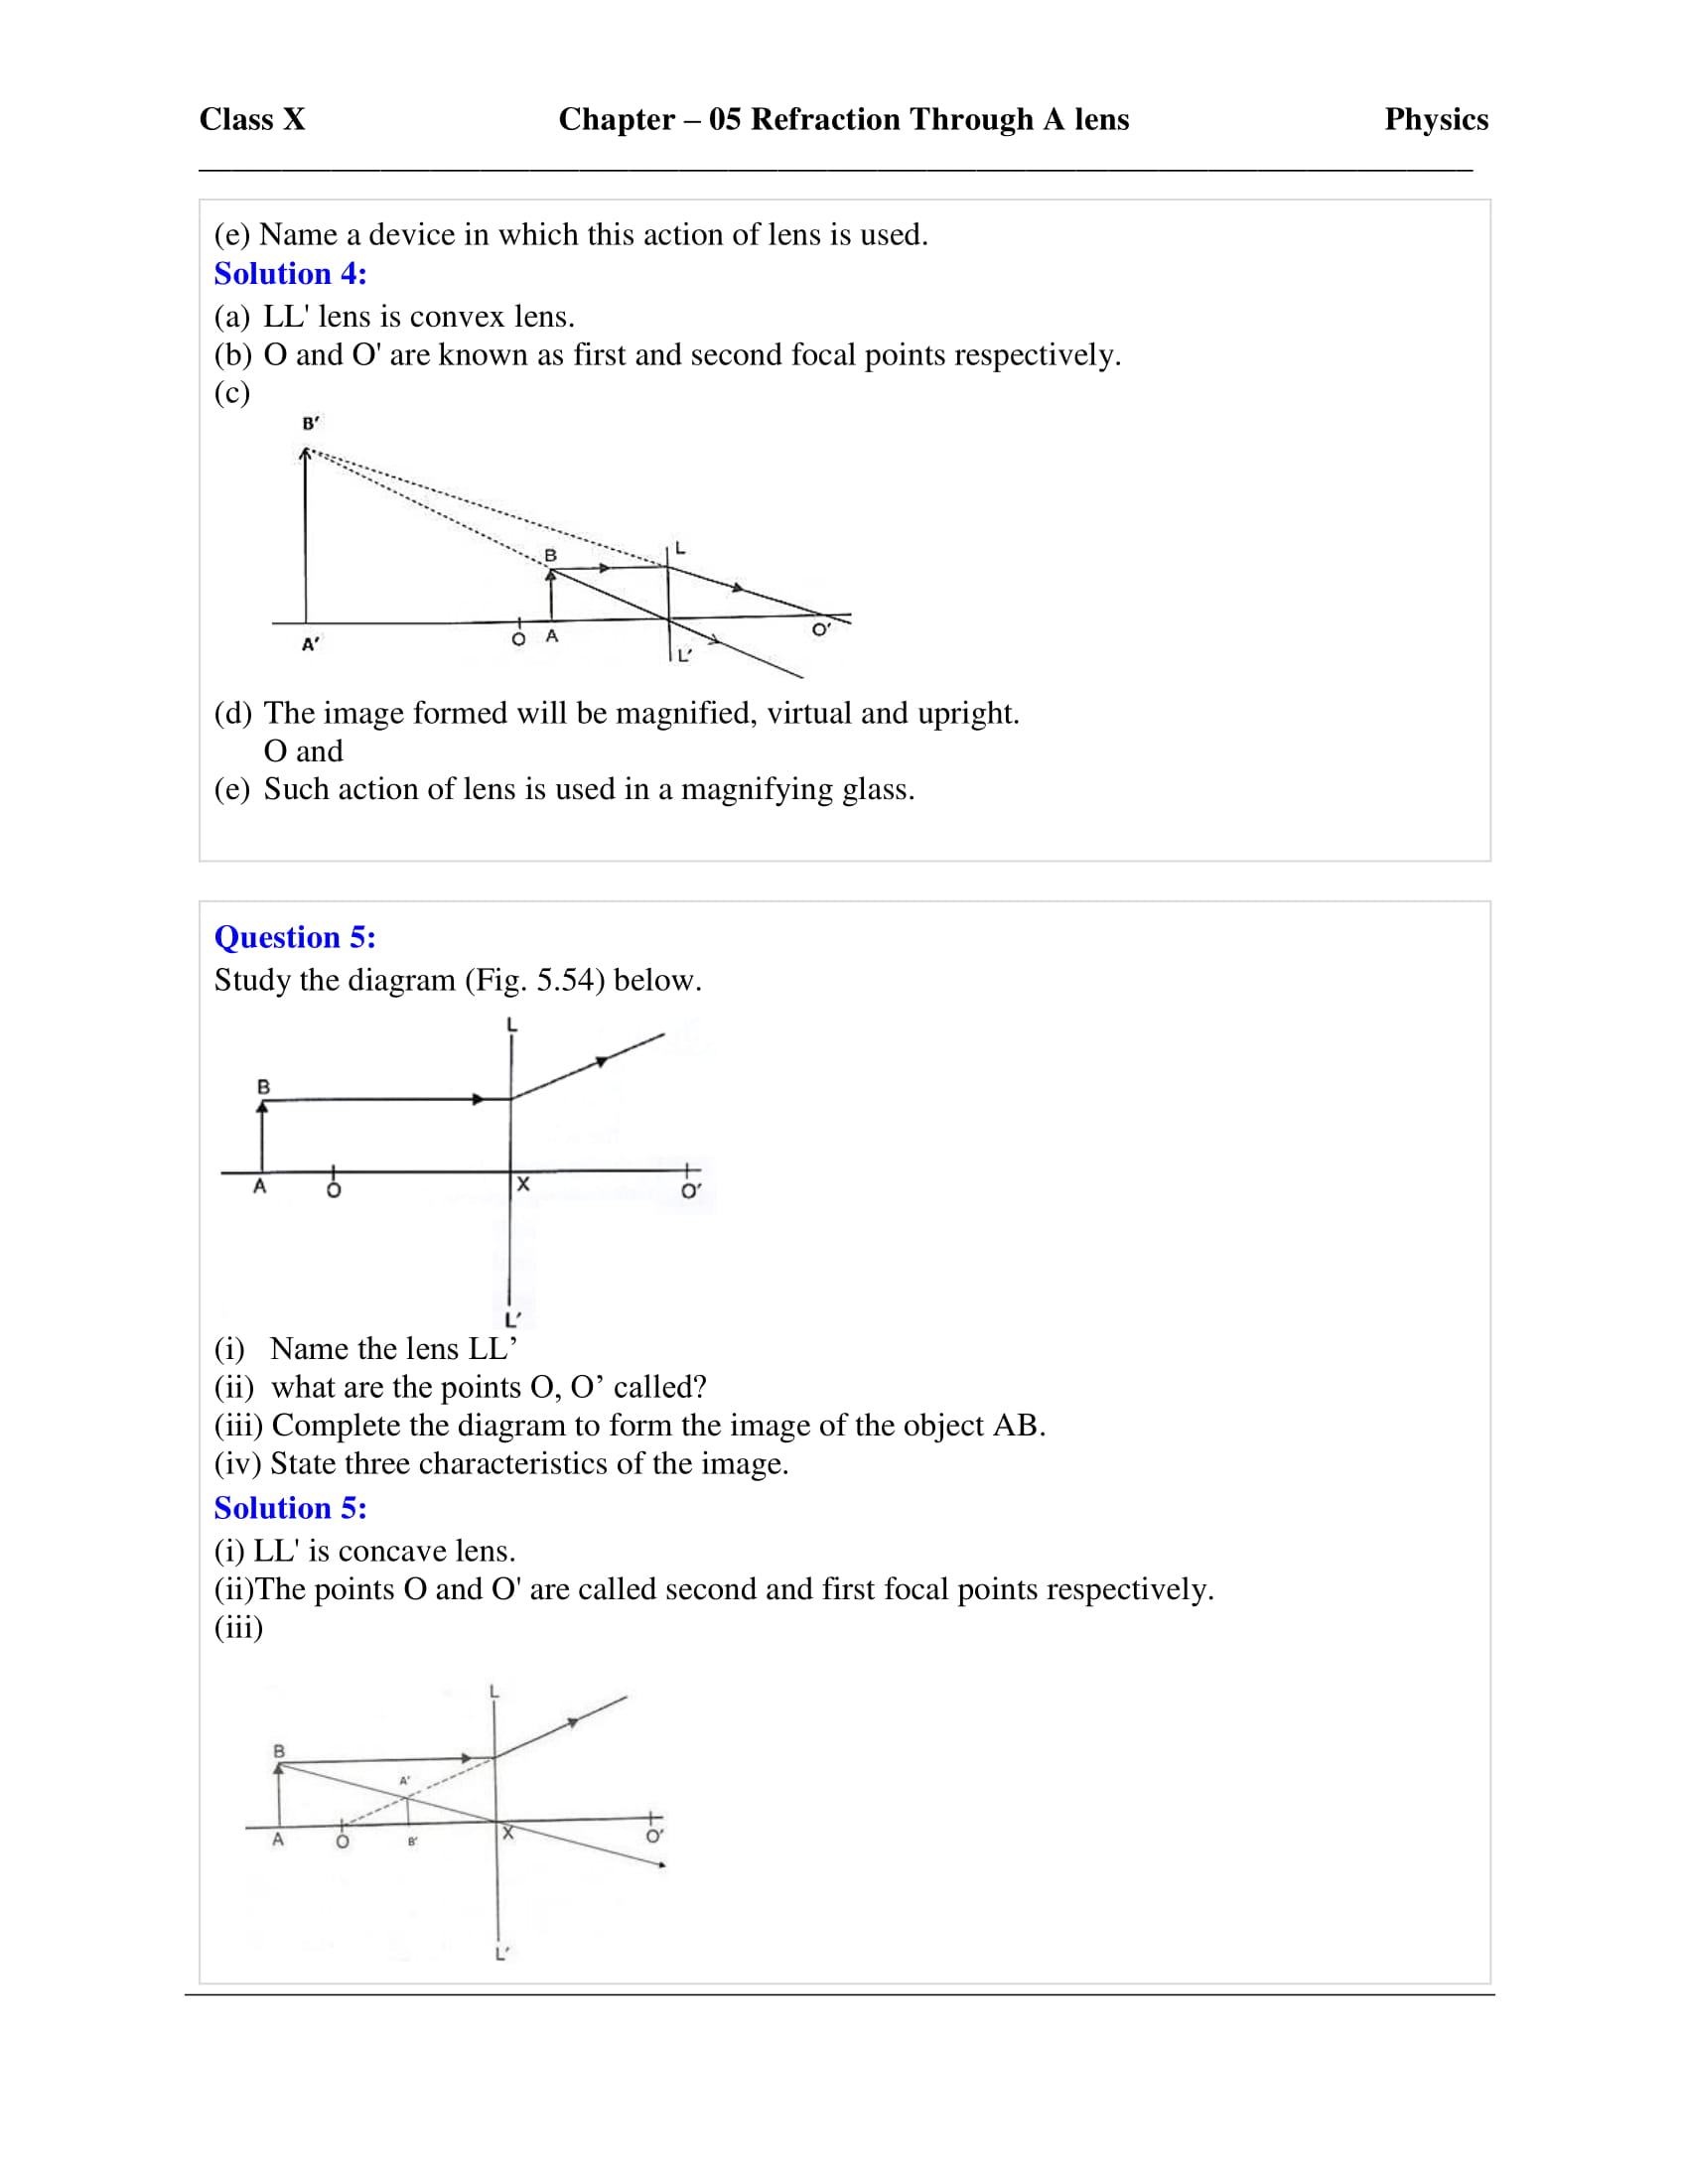 icse-selina-physics-solutions-class-10-chapter-5-refraction-through-a-lens-17